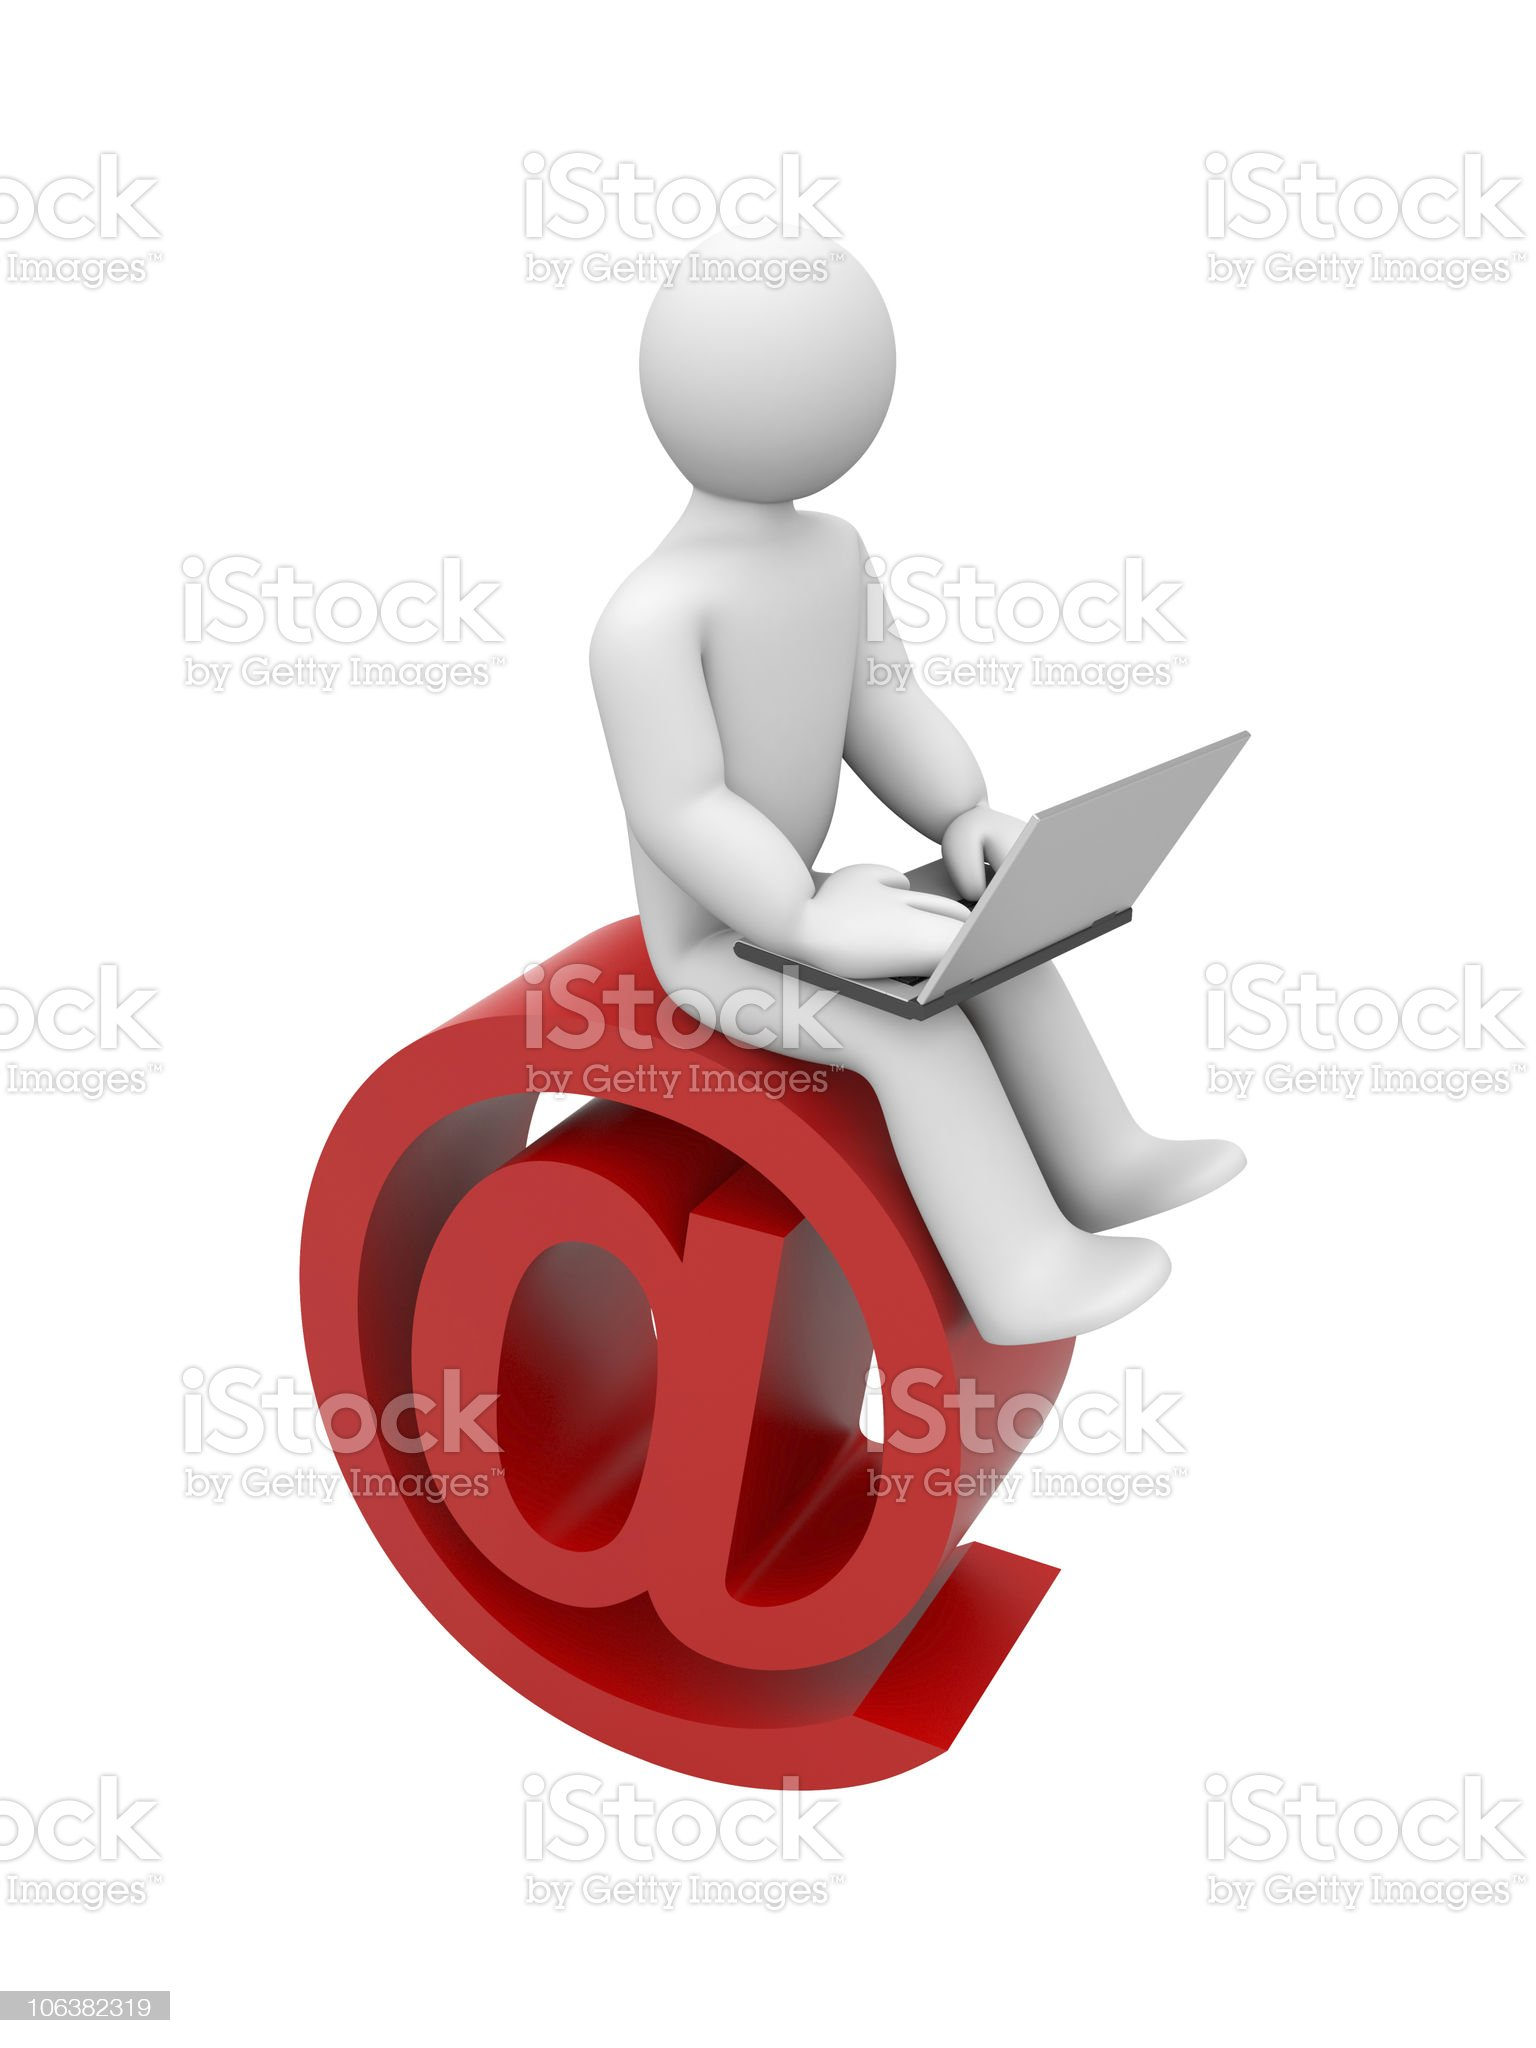 Person read emails or surfing in internet royalty-free stock vector art